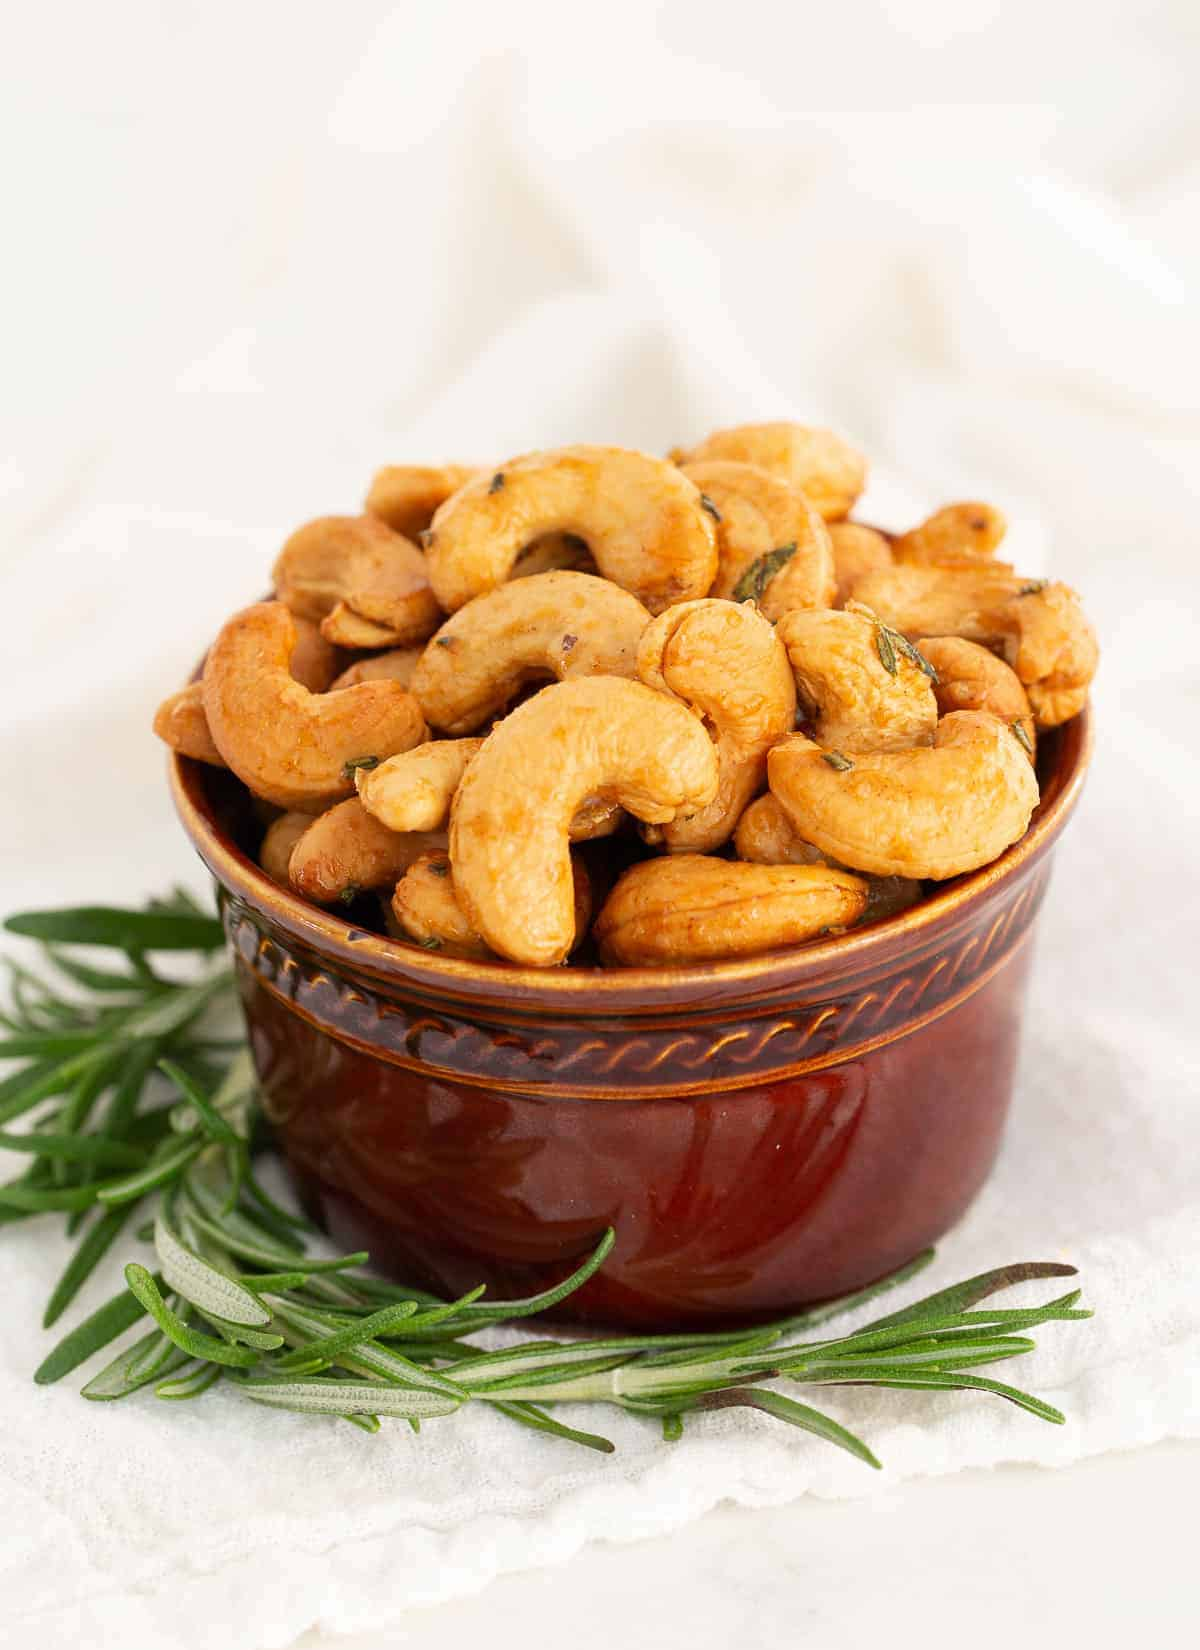 roasted cashews in a bowl